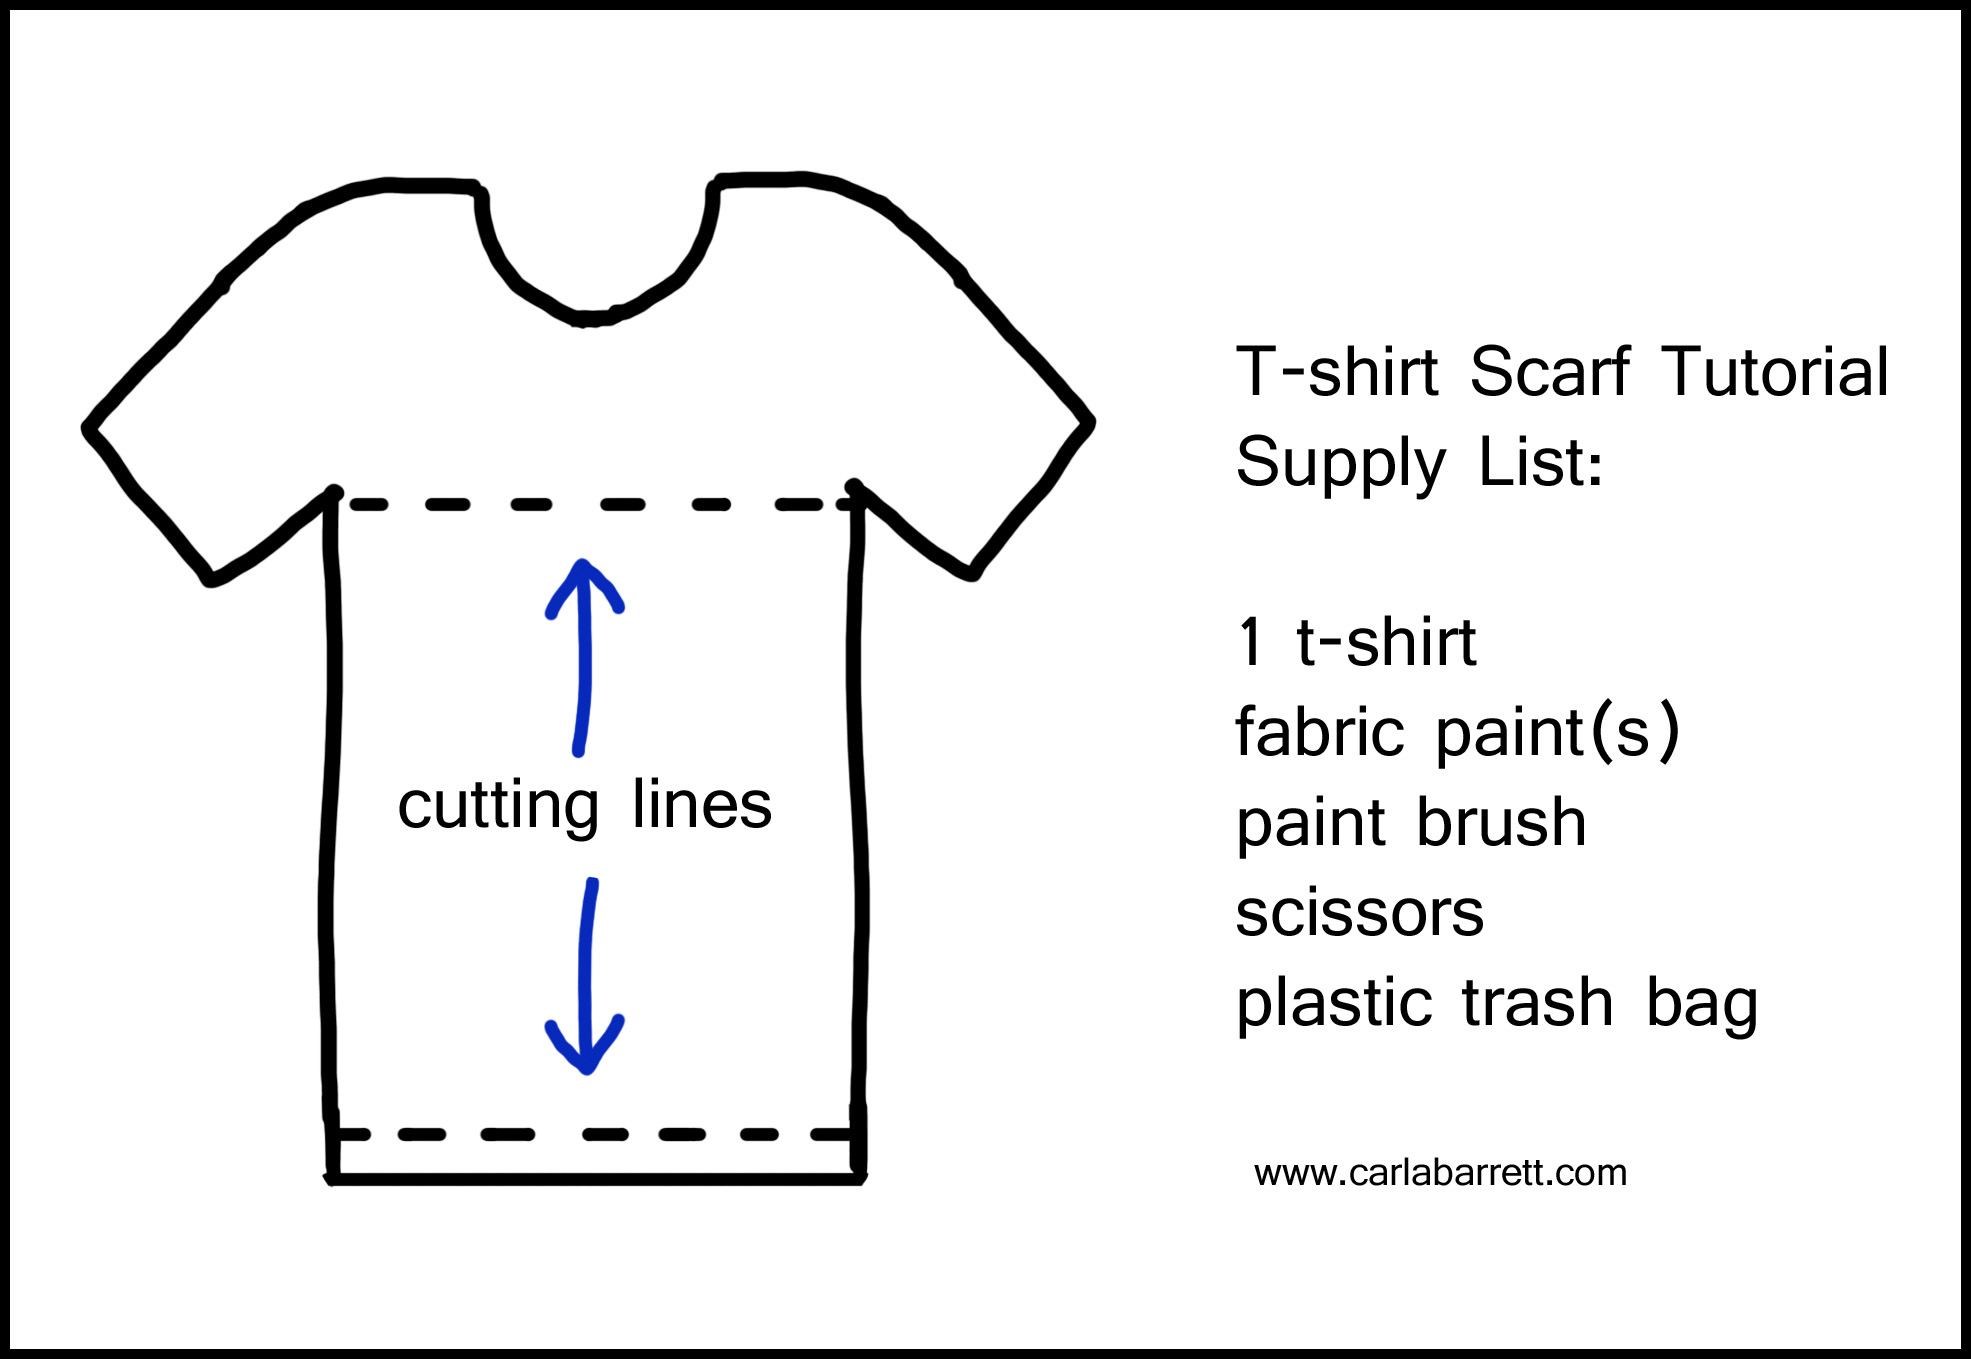 Recycled T Shirt Scarf Tutorial